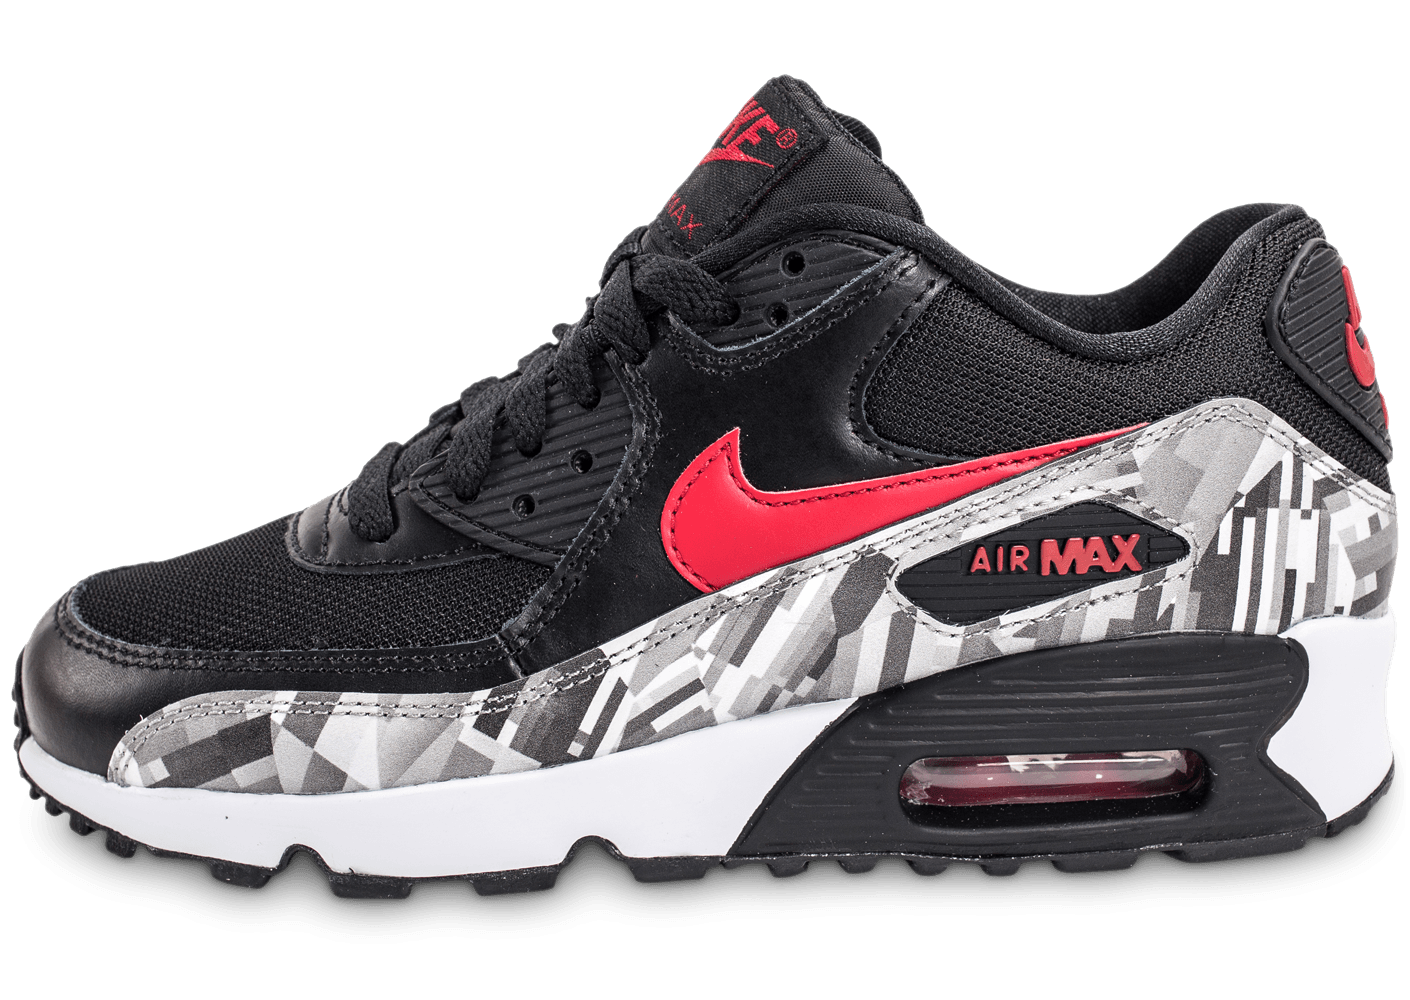 chaussures nike air max 90. Black Bedroom Furniture Sets. Home Design Ideas